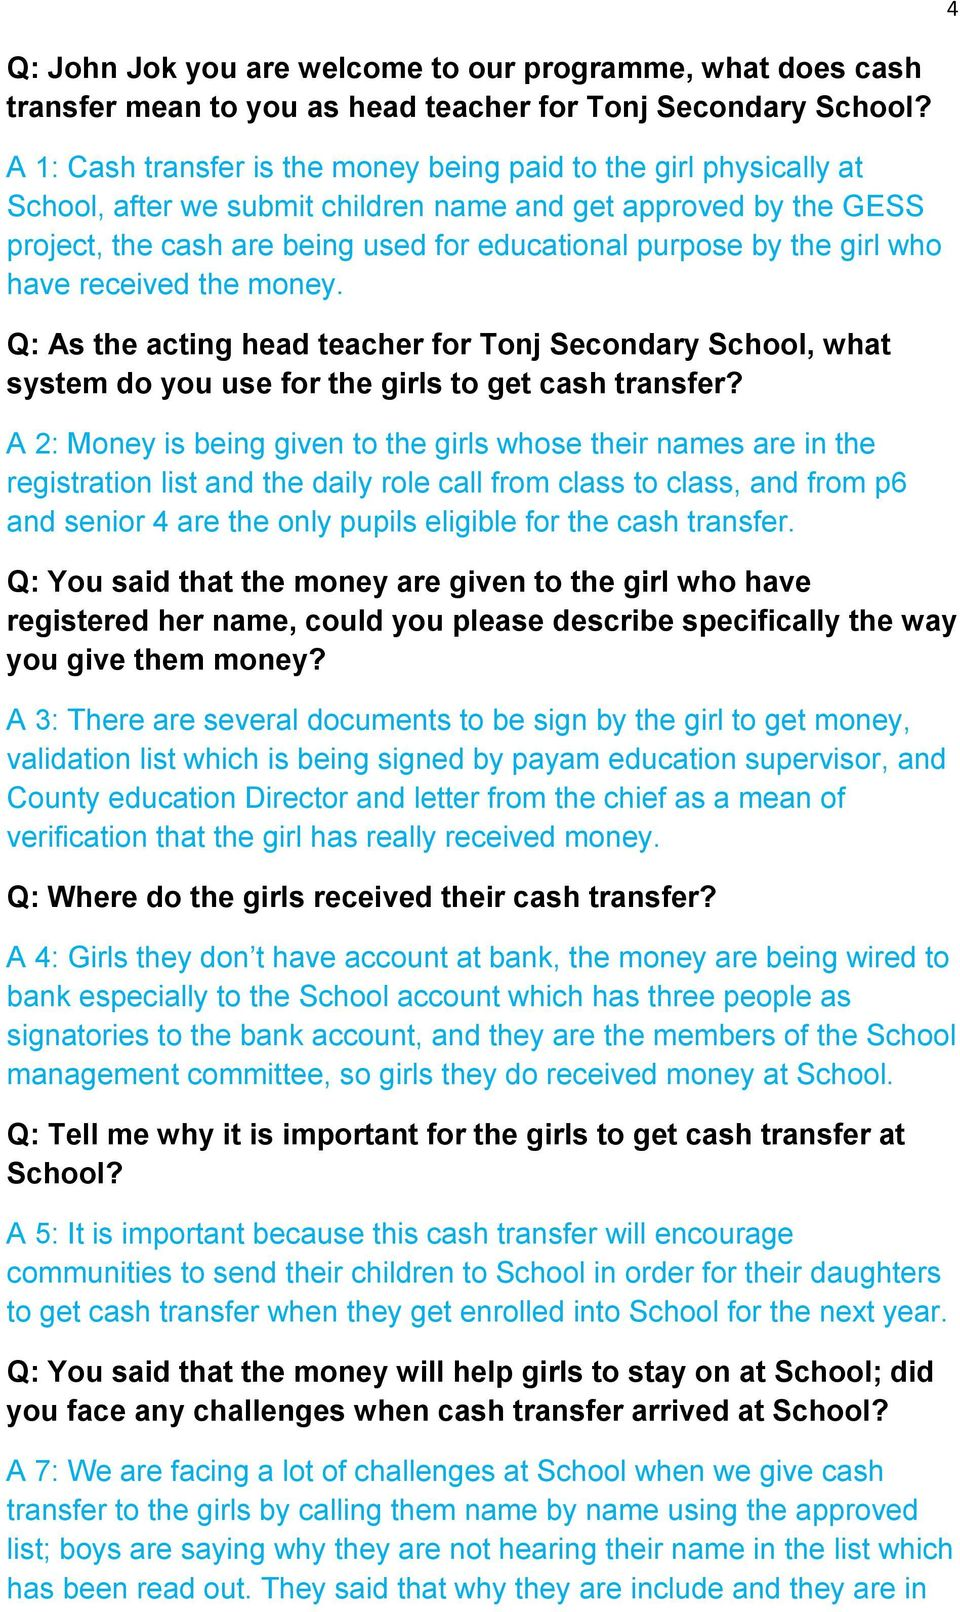 girl who have received the money. Q: As the acting head teacher for Tonj Secondary School, what system do you use for the girls to get cash transfer?